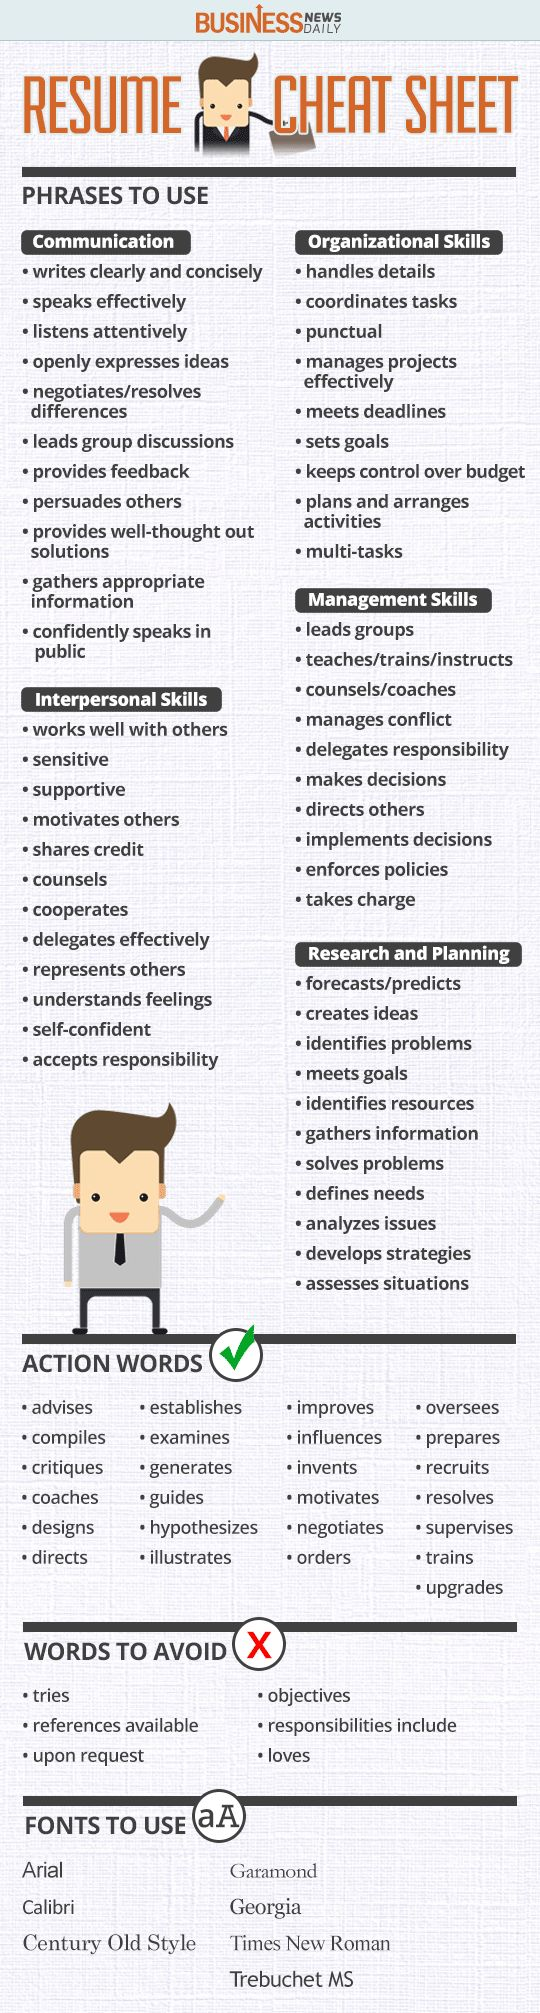 Opposenewapstandardsus  Splendid  Ideas About Resume On Pinterest  Cv Format Resume Cv And  With Extraordinary Resume Cheat Sheet Infographic Andrews Almost Done With A Complete Unit On Employment Which With Cool Cnc Machinist Resume Also Resume Designer In Addition Best Skills For Resume And Cto Resume As Well As Computer Skills To List On Resume Additionally Budget Analyst Resume From Pinterestcom With Opposenewapstandardsus  Extraordinary  Ideas About Resume On Pinterest  Cv Format Resume Cv And  With Cool Resume Cheat Sheet Infographic Andrews Almost Done With A Complete Unit On Employment Which And Splendid Cnc Machinist Resume Also Resume Designer In Addition Best Skills For Resume From Pinterestcom